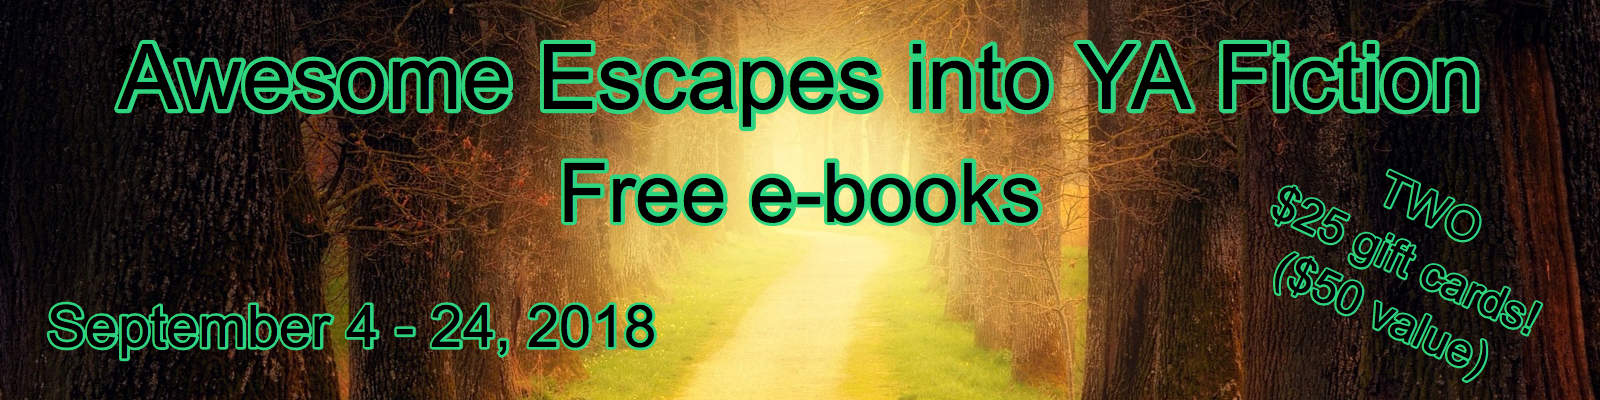 Awesome Escapes into YA Fiction